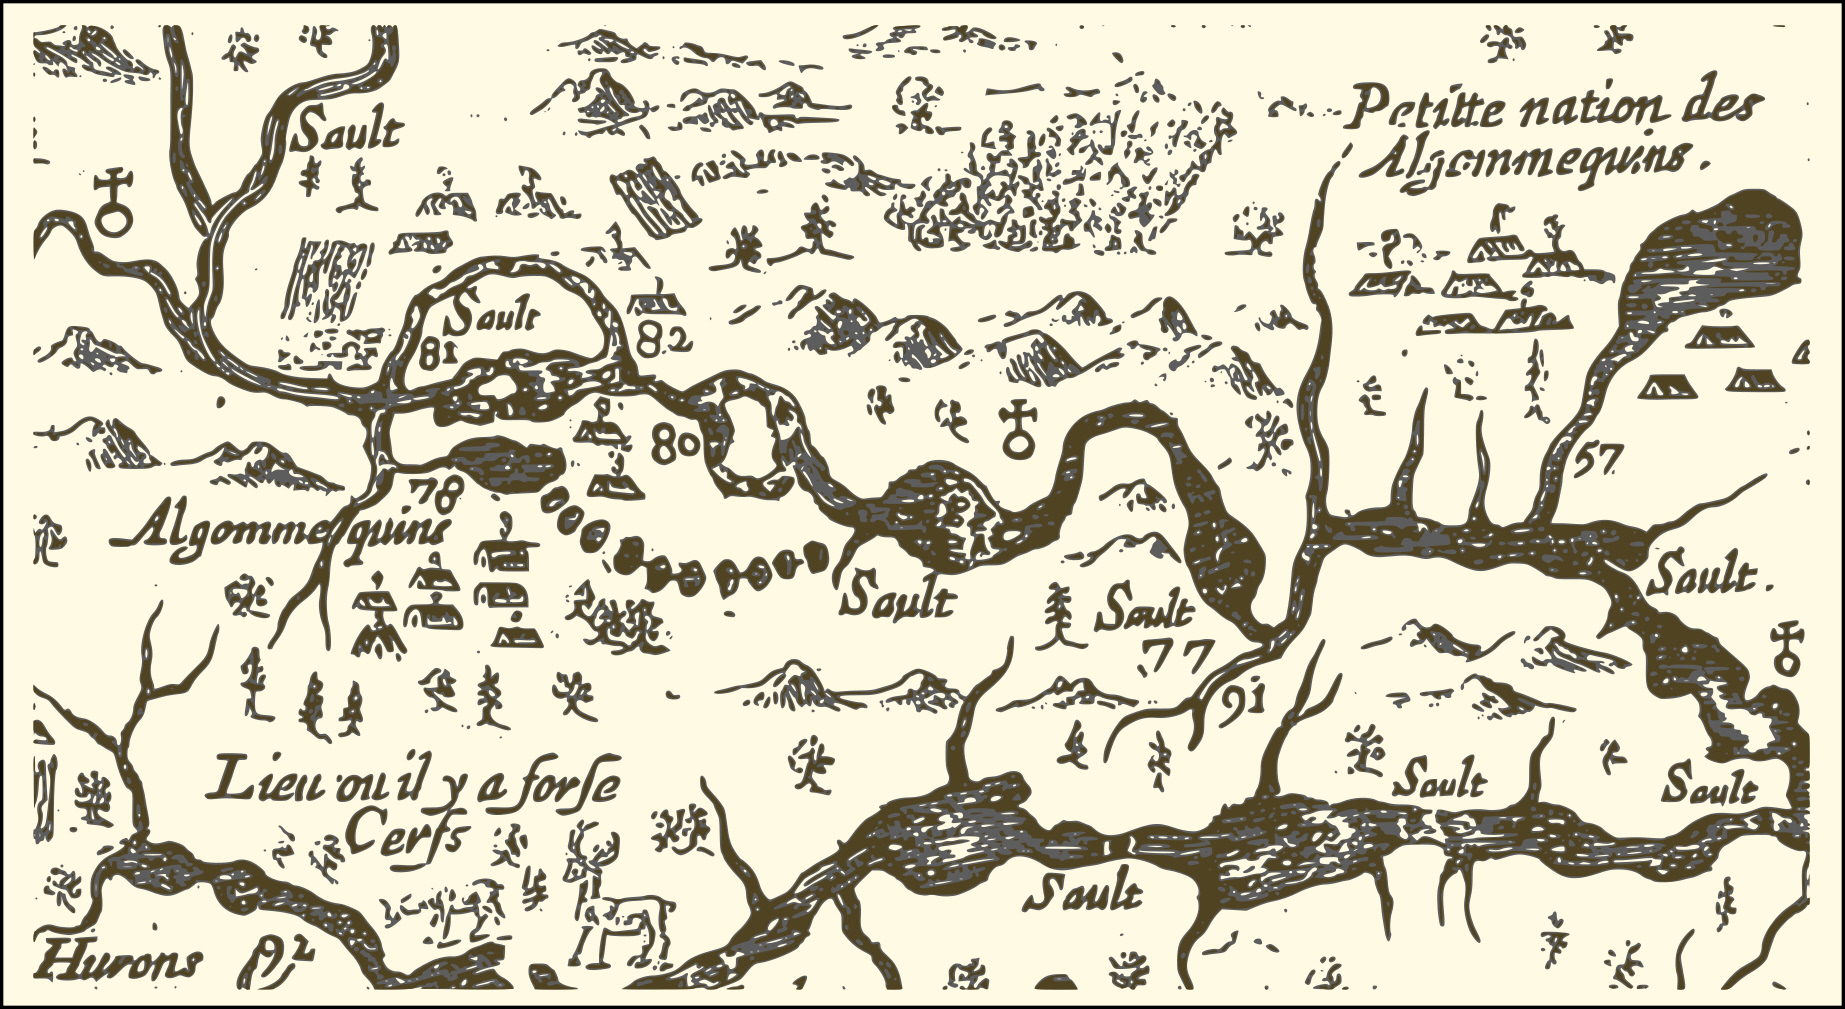 Samuel de Champlain's depiction of the eastern reaches of New France. It shows a portion of the Ottawa River route he took in 1616, with numbers used to indicate sites he visited, significant rapids and aboriginal encampments. Numbers 77 and 91 correspond to the locations of the modern-day City of Ottawa and the Rideau River respectively; #80 marks the location of the large rapids south of Calumet Island; #81 shows the site of Allumette Island, inhabited at that time by members of the Algonquin nation; #82 corresponds roughly to the location of the modern-day village of Fort-Coulonge, and an Algonquin settlement that existed at the time of Champlain's travels.